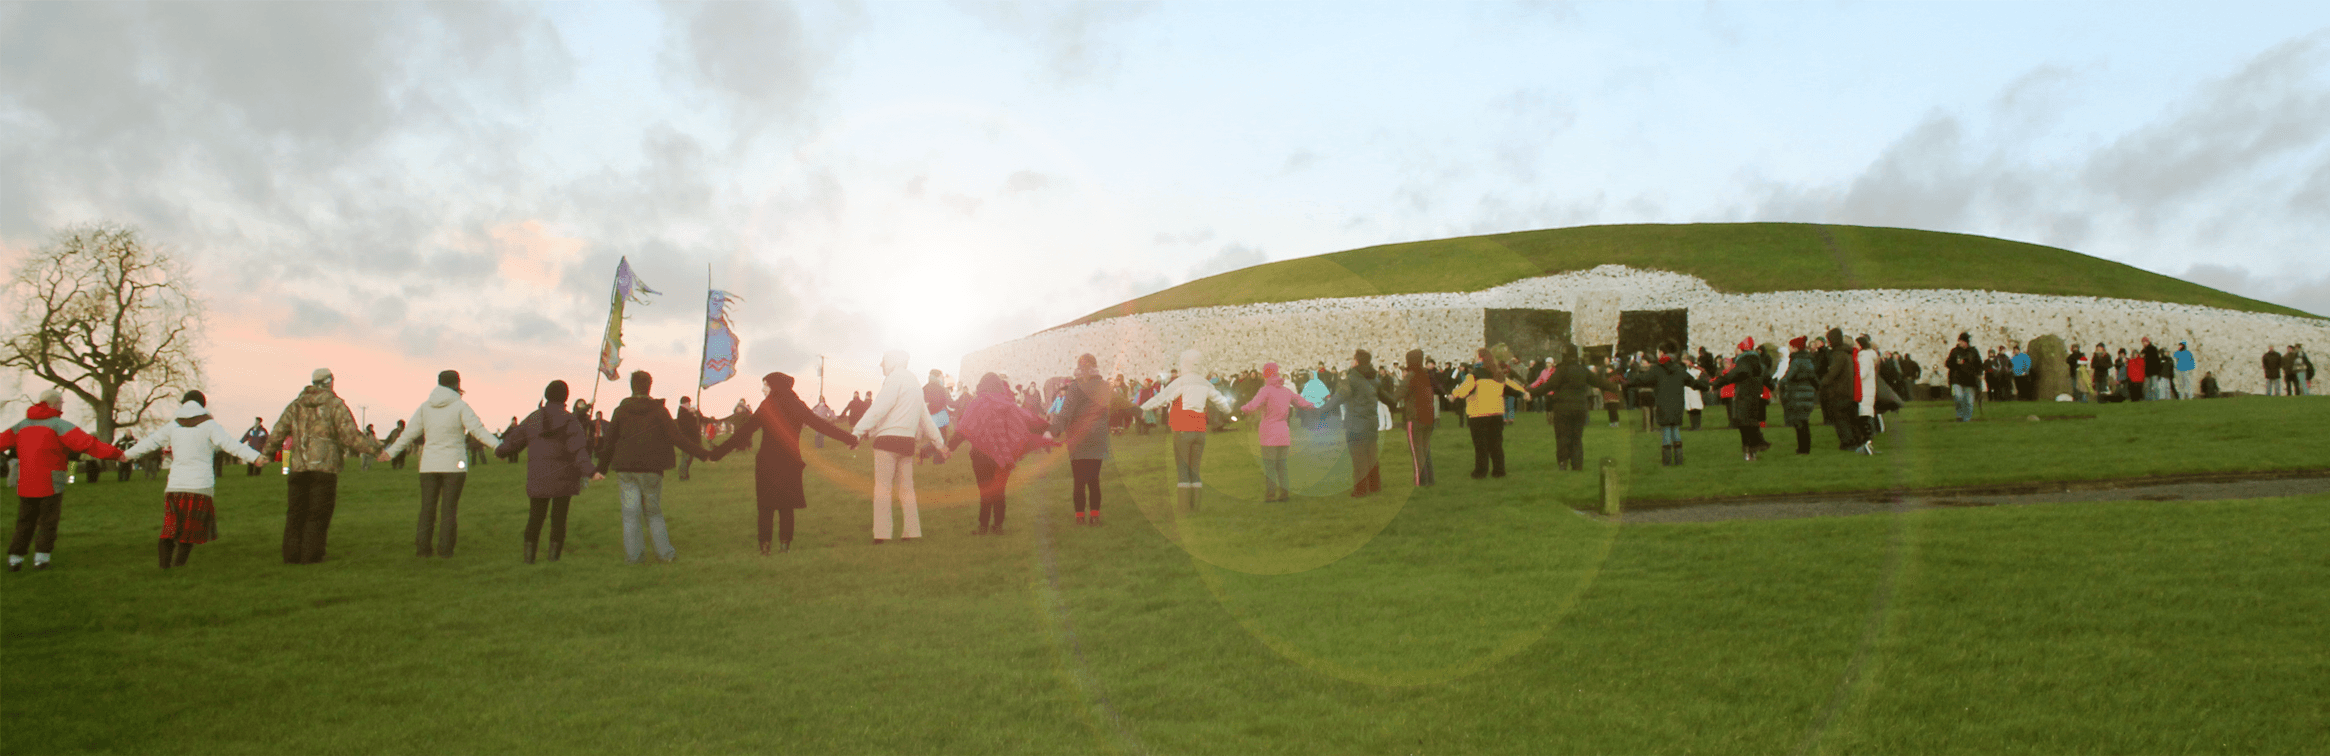 HD-winter-solstice-experience-2013-people-holding-hands-ireland-small-1.png